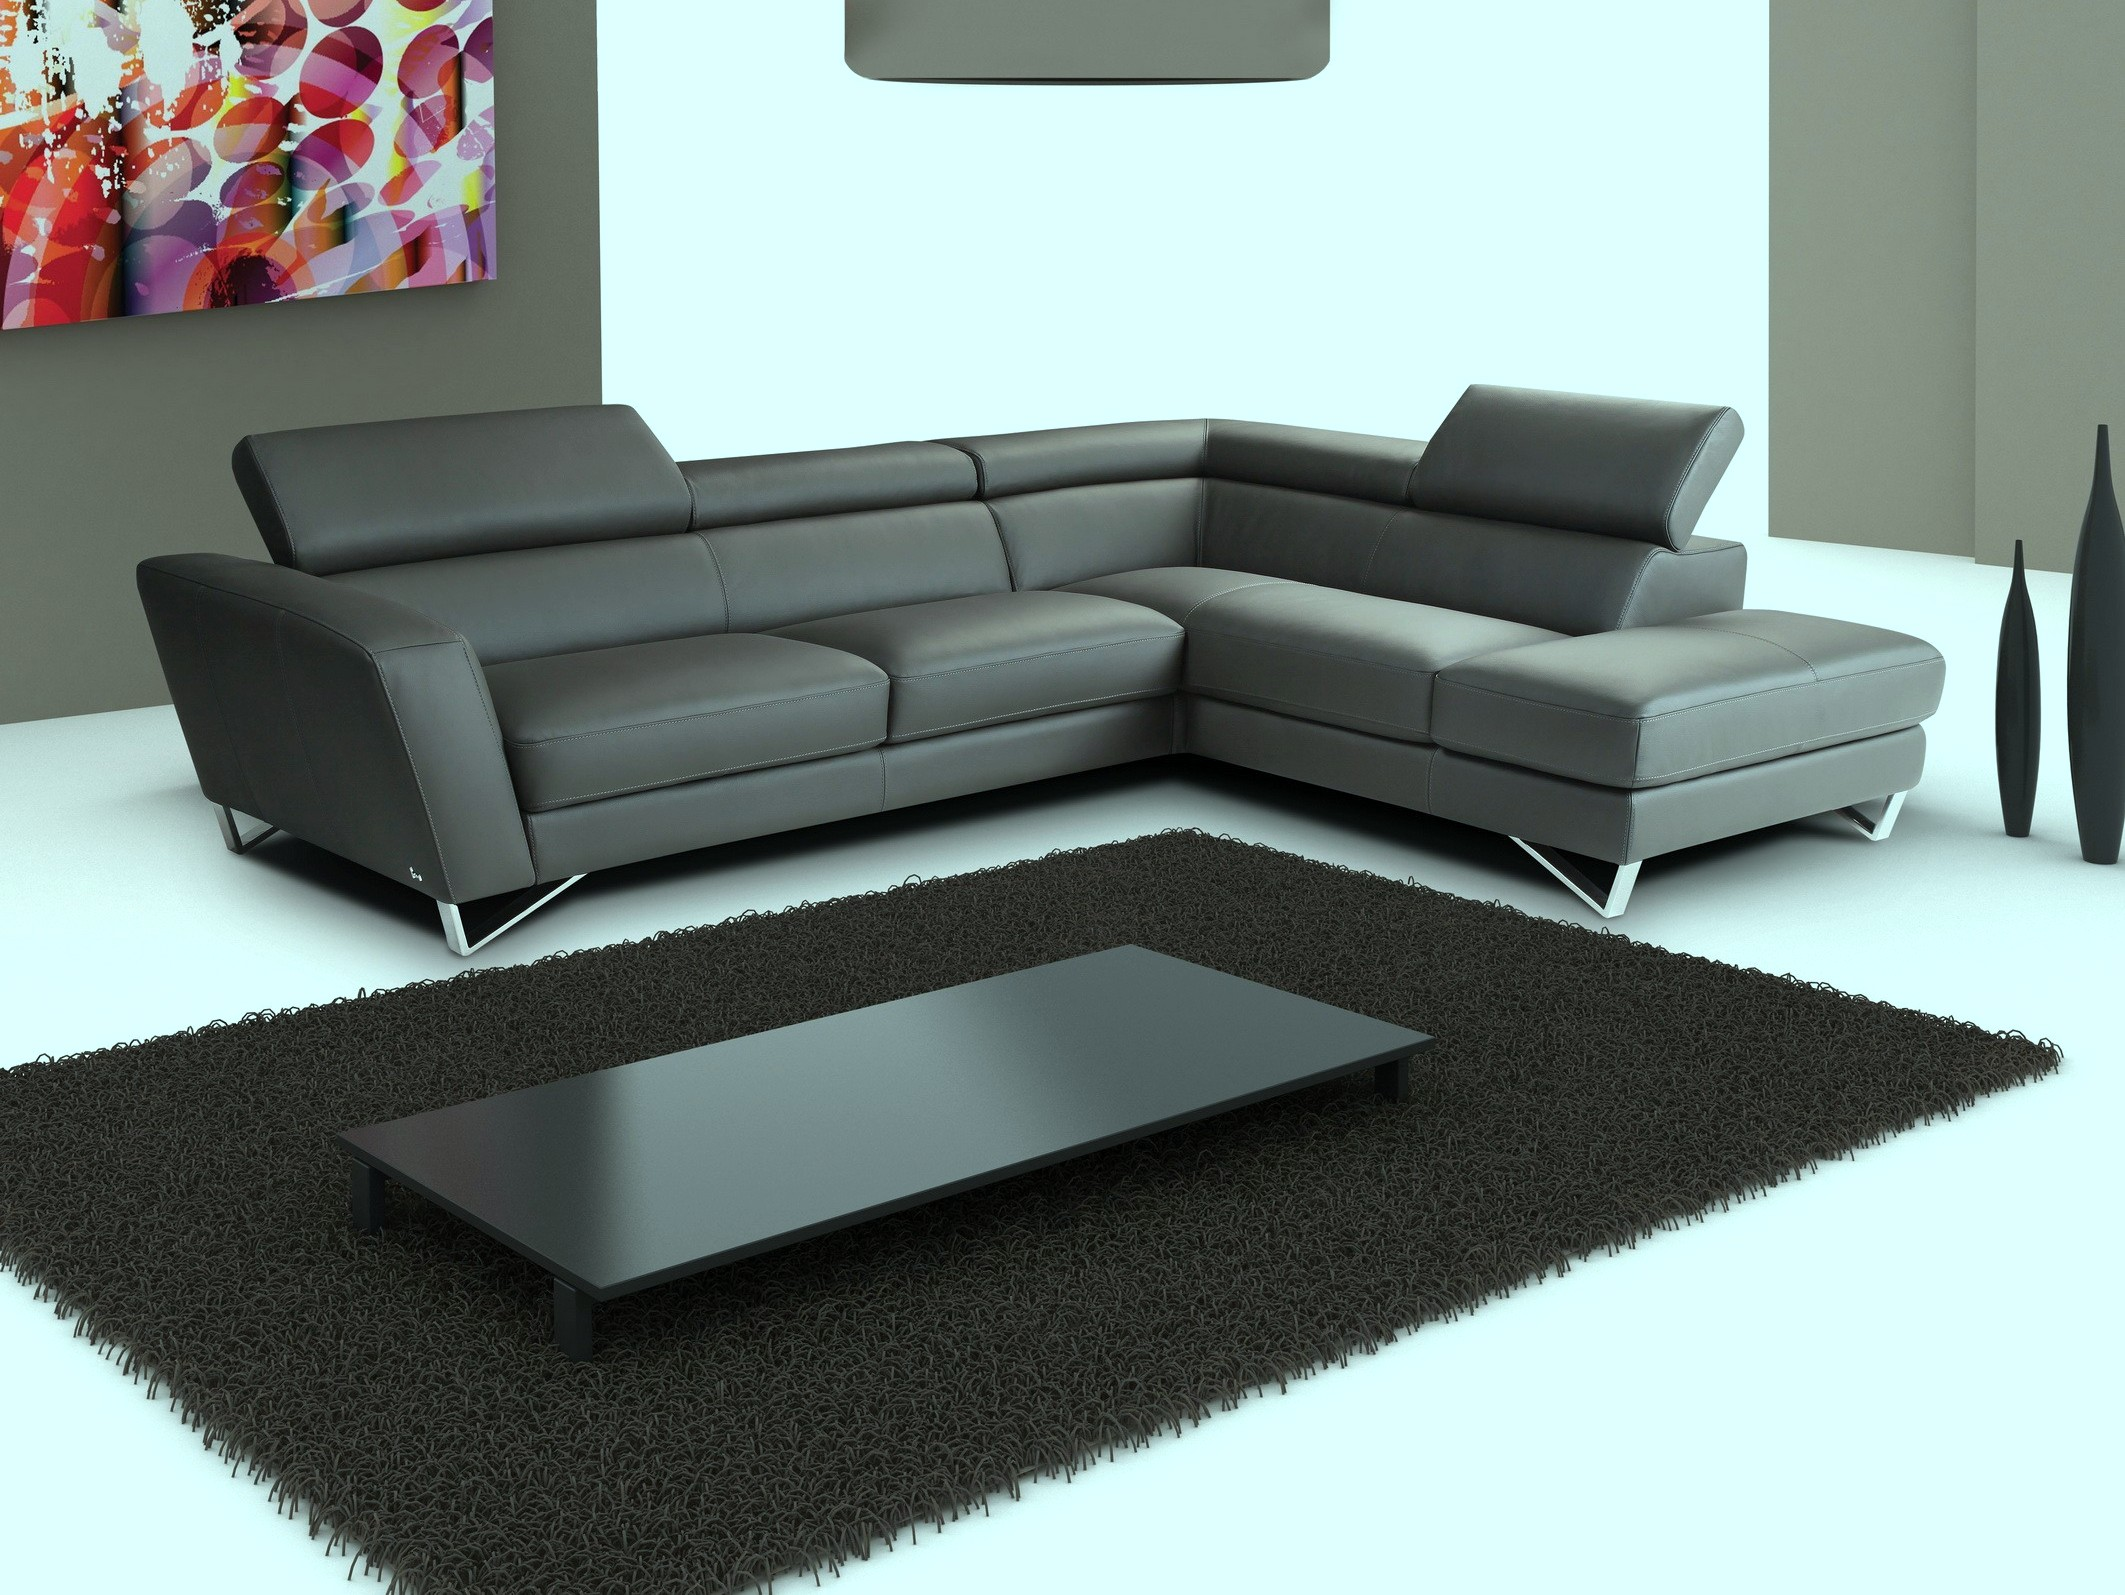 Super Low Black Coffee Table Coffee Tables - Super low coffee table